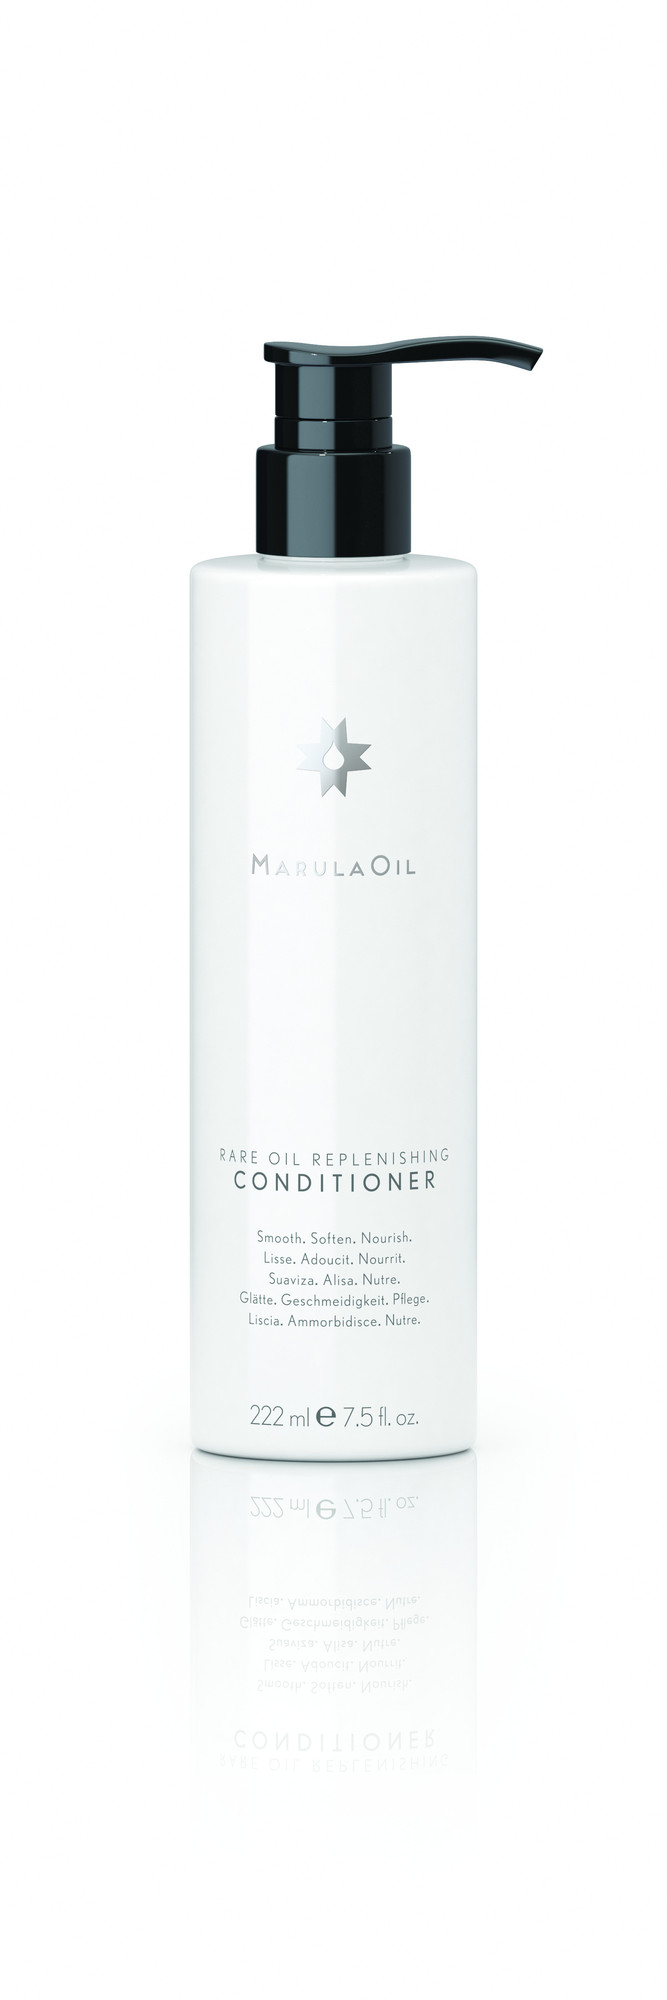 RARE OIL REPLENISHING CONDITIONER